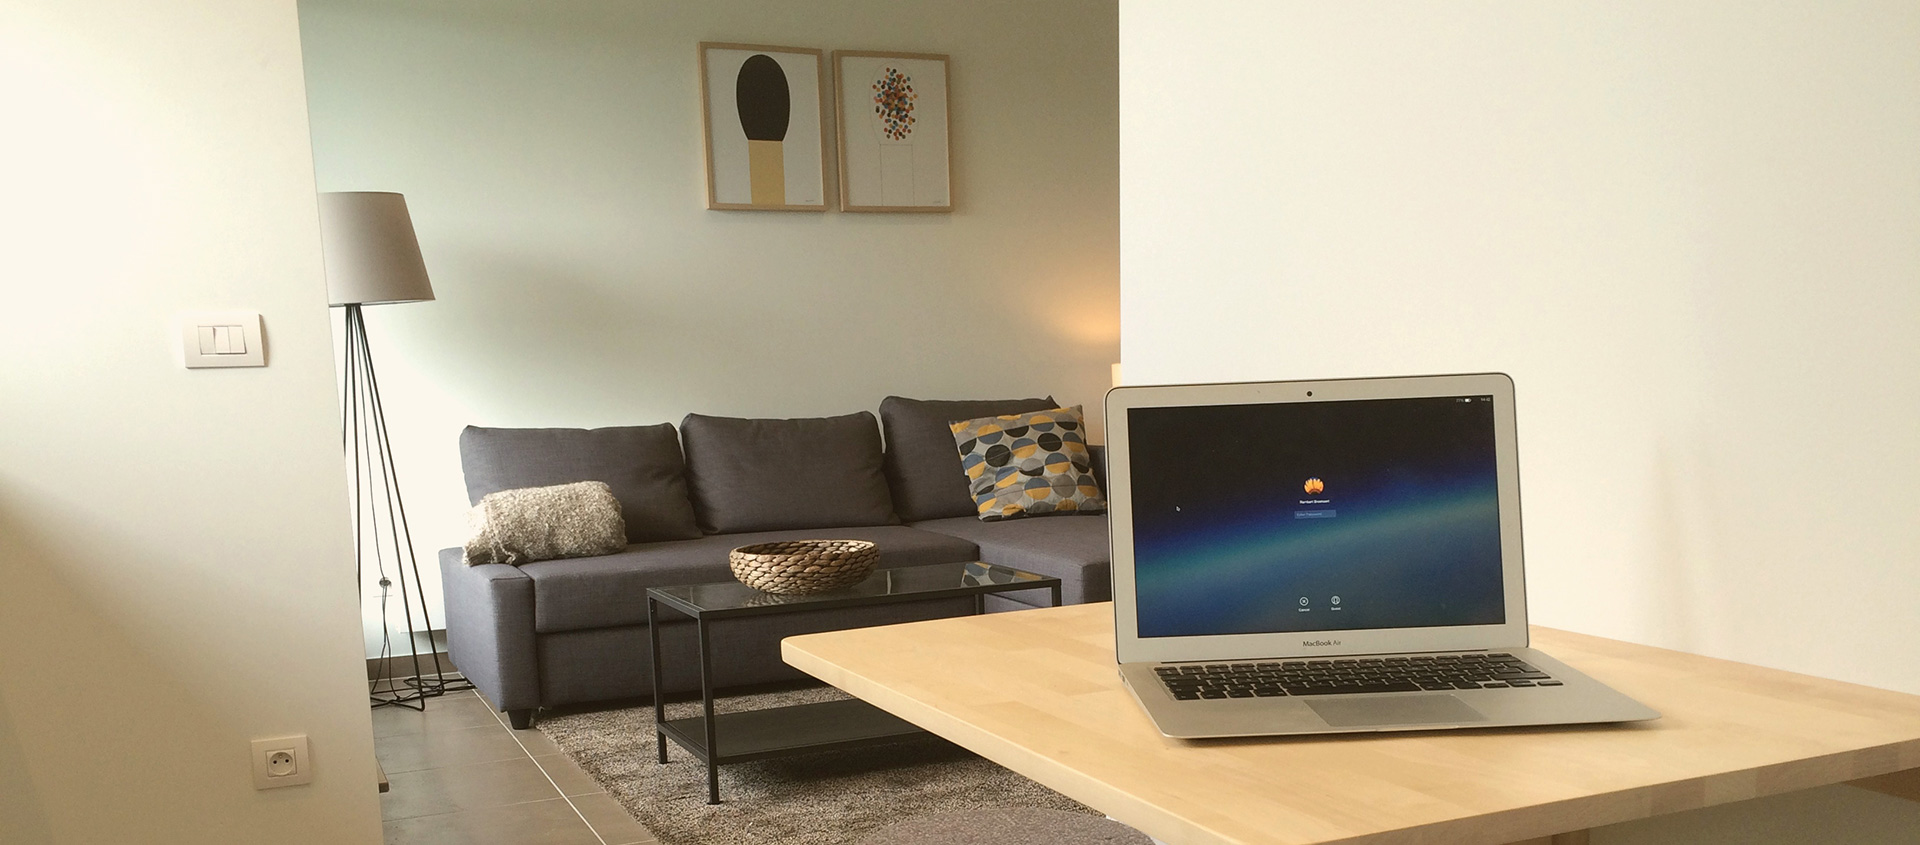 We offer a fully furnished & equipped apartment for 2 persons, available for short- & long-term rental in Ghent, Belgium